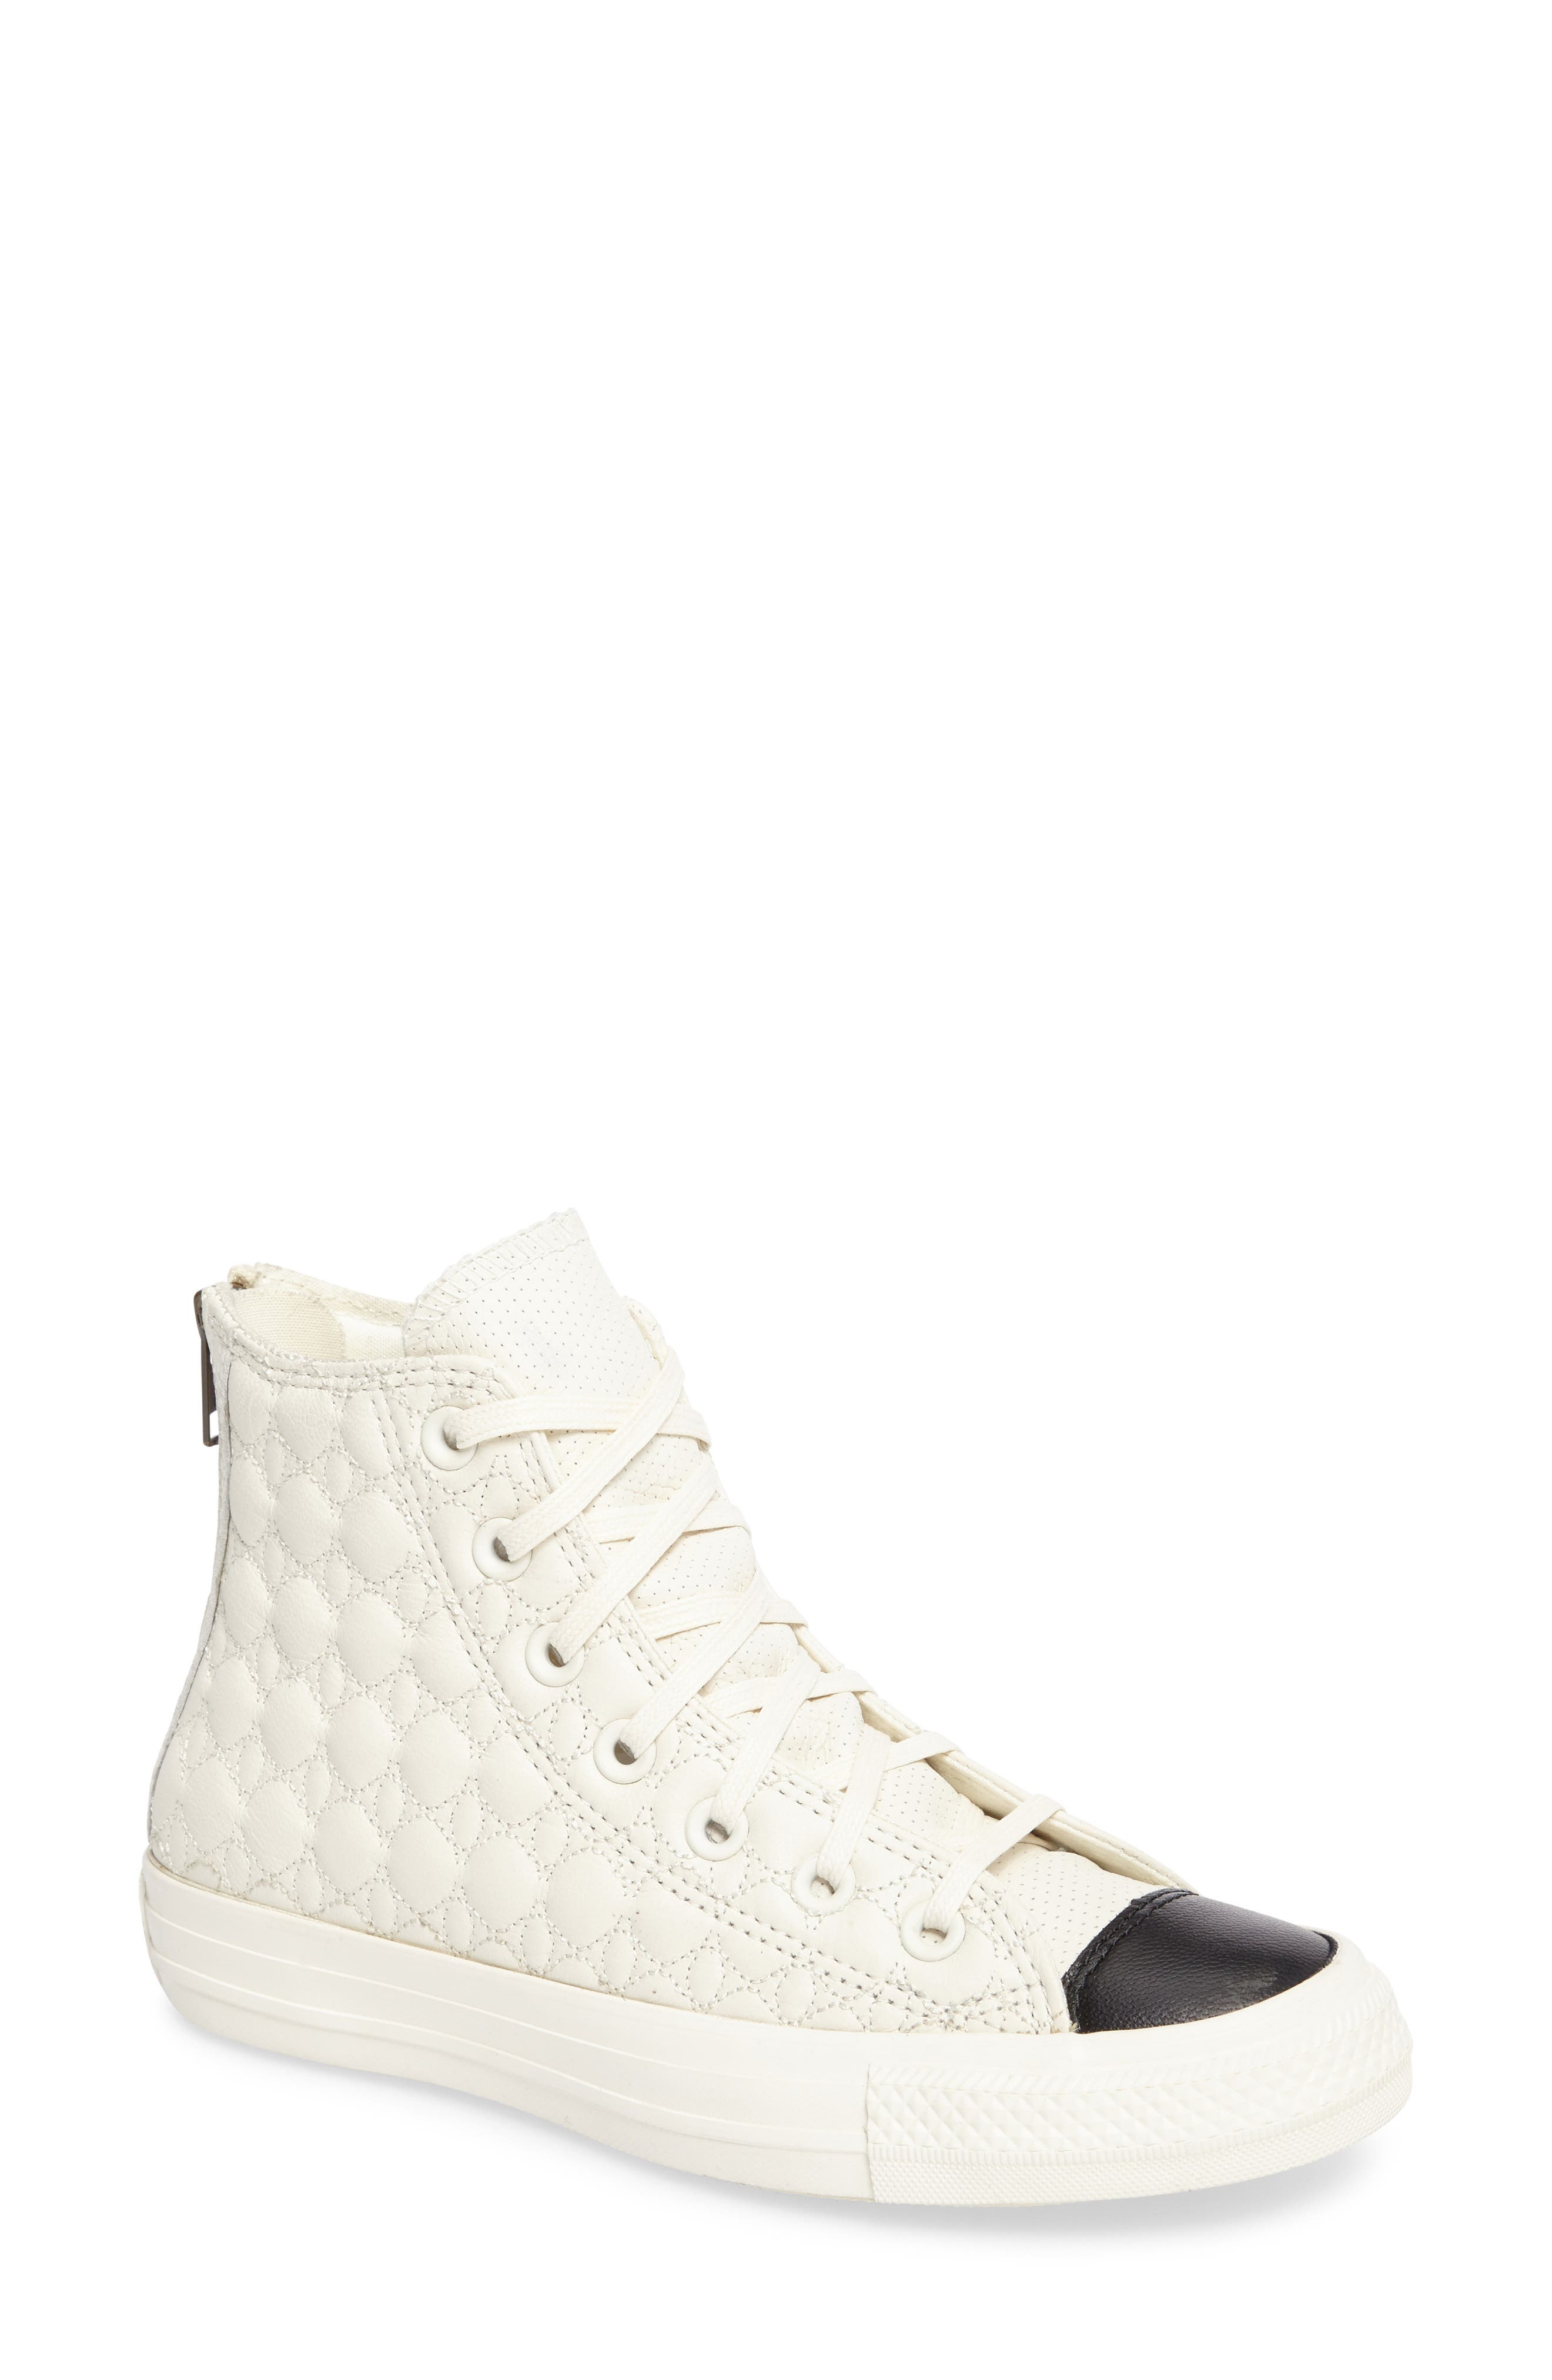 All Star<sup>®</sup> Quilted High Top Sneaker,                         Main,                         color, Egret Leather